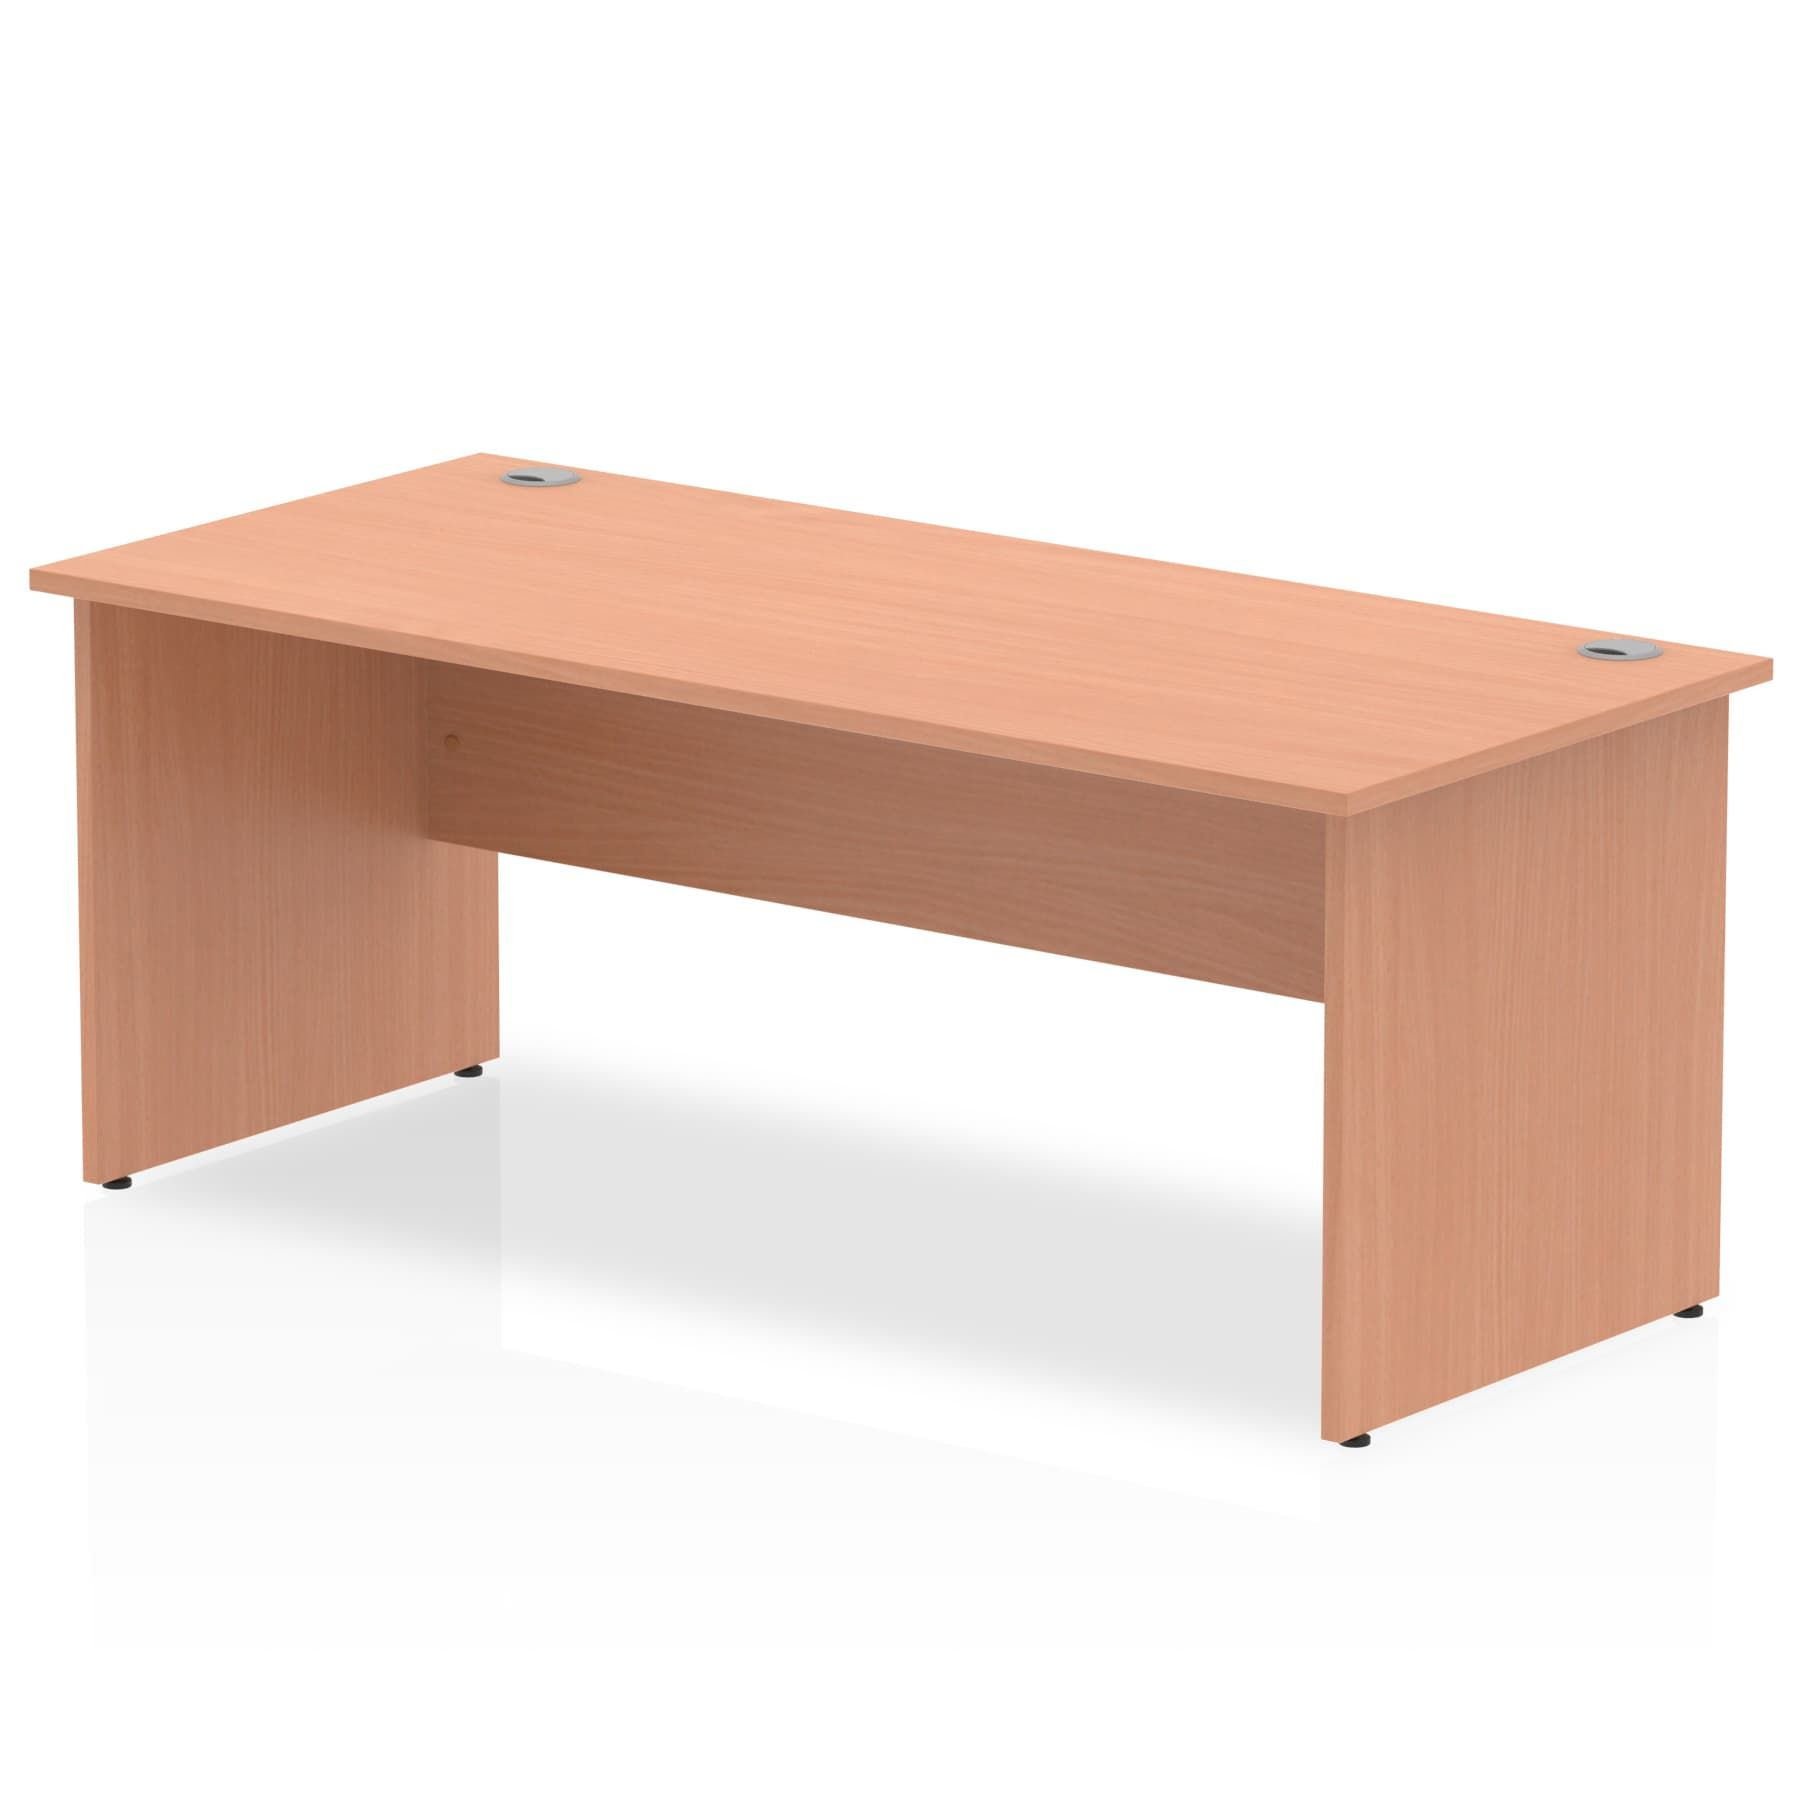 Impulse Panel End 1800 Rectangle Desk